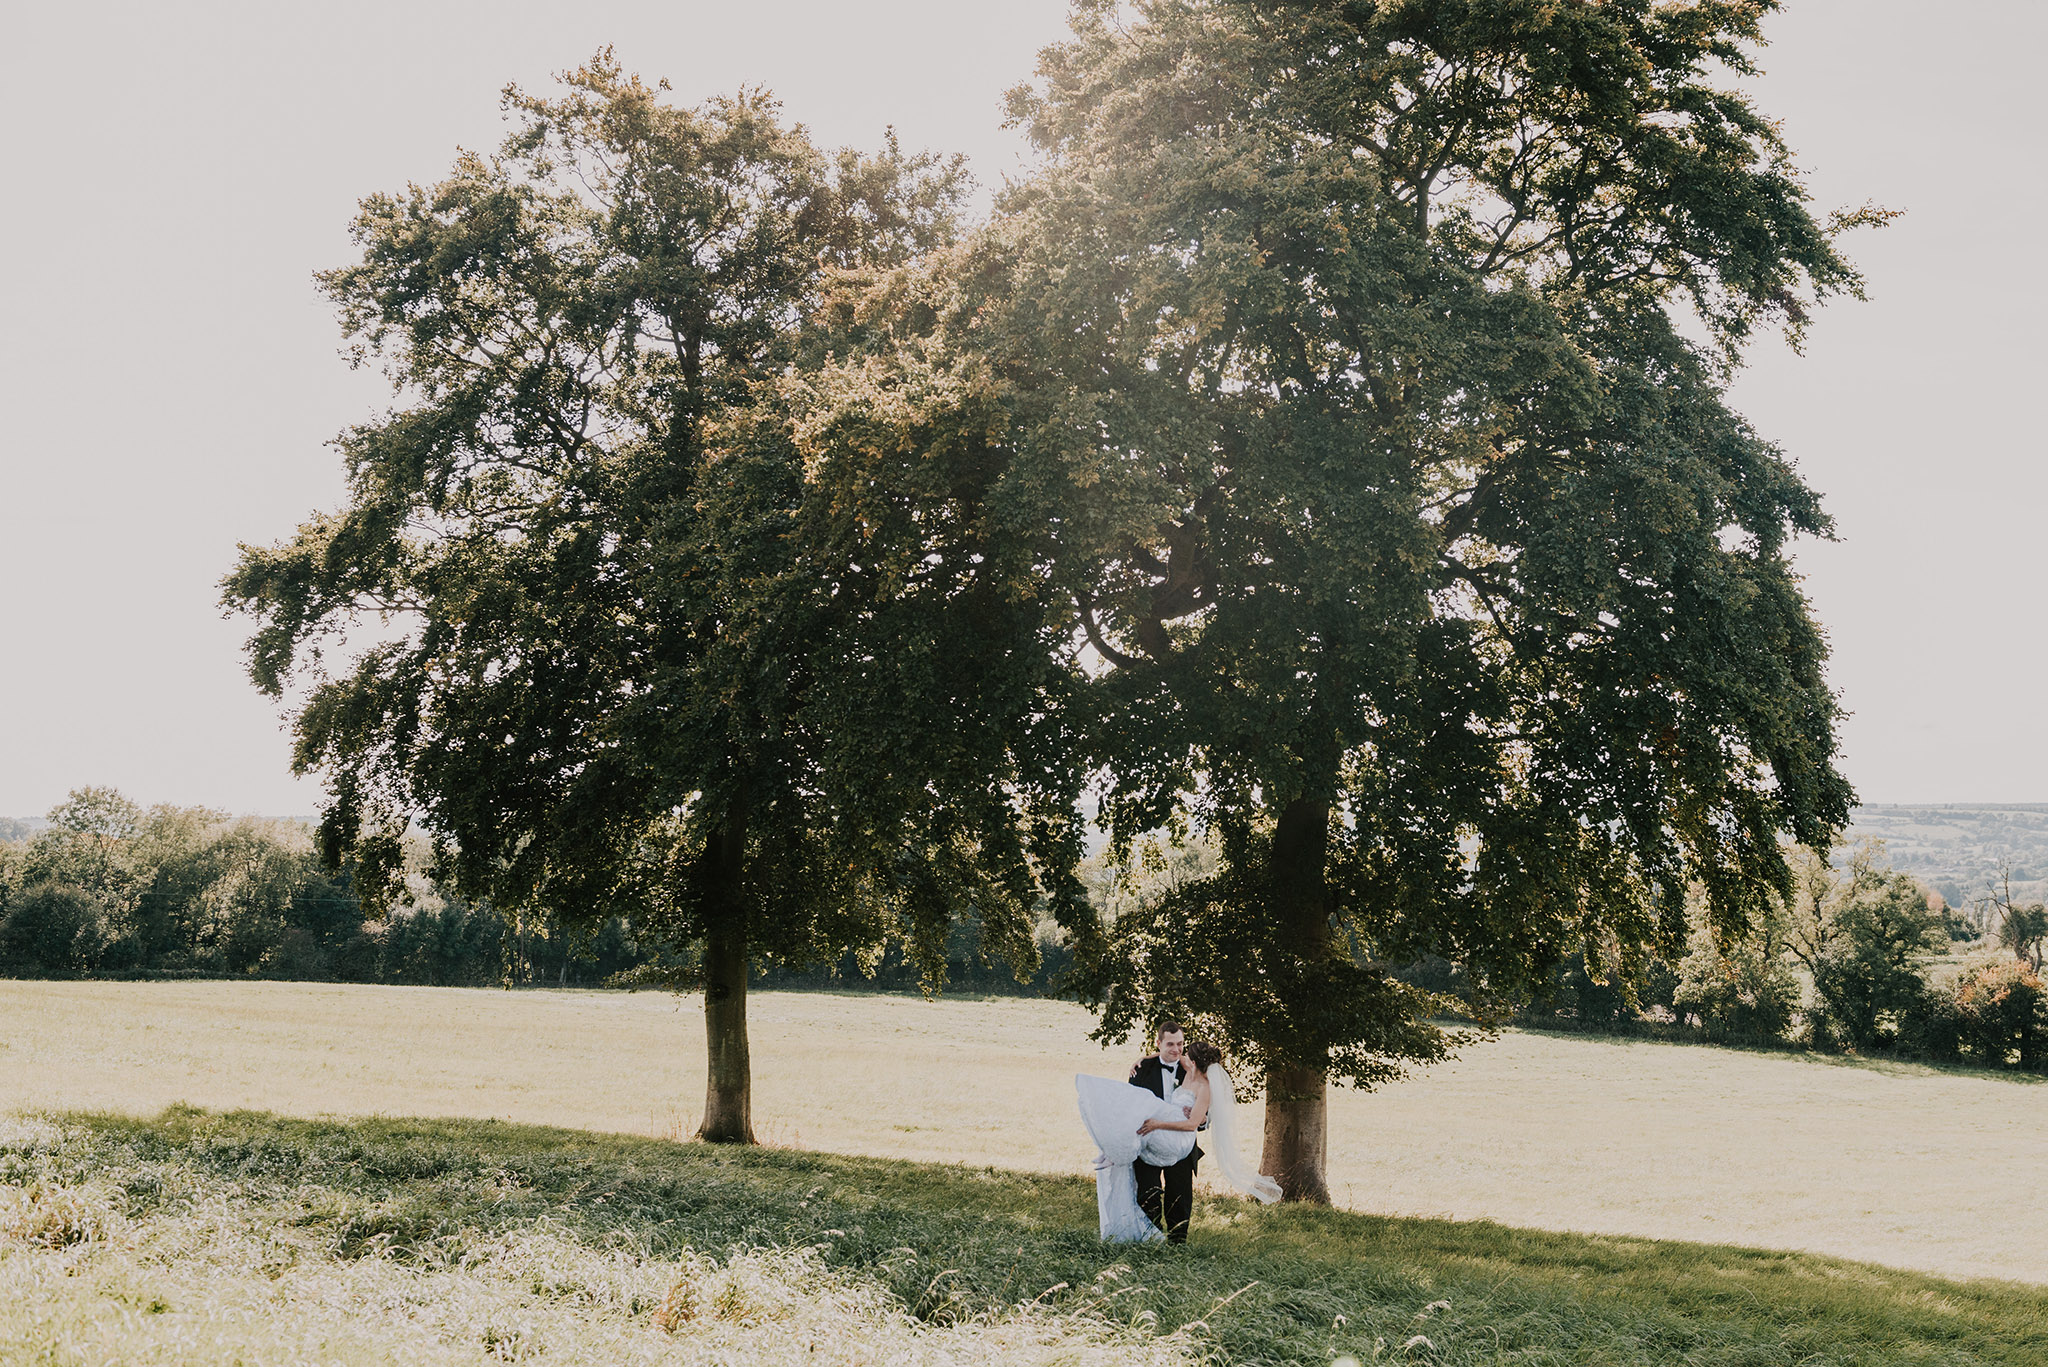 trees-carlie-josh-Scott-stockwell-photography-wedding-photographer-malvern-worcestershire.jpg